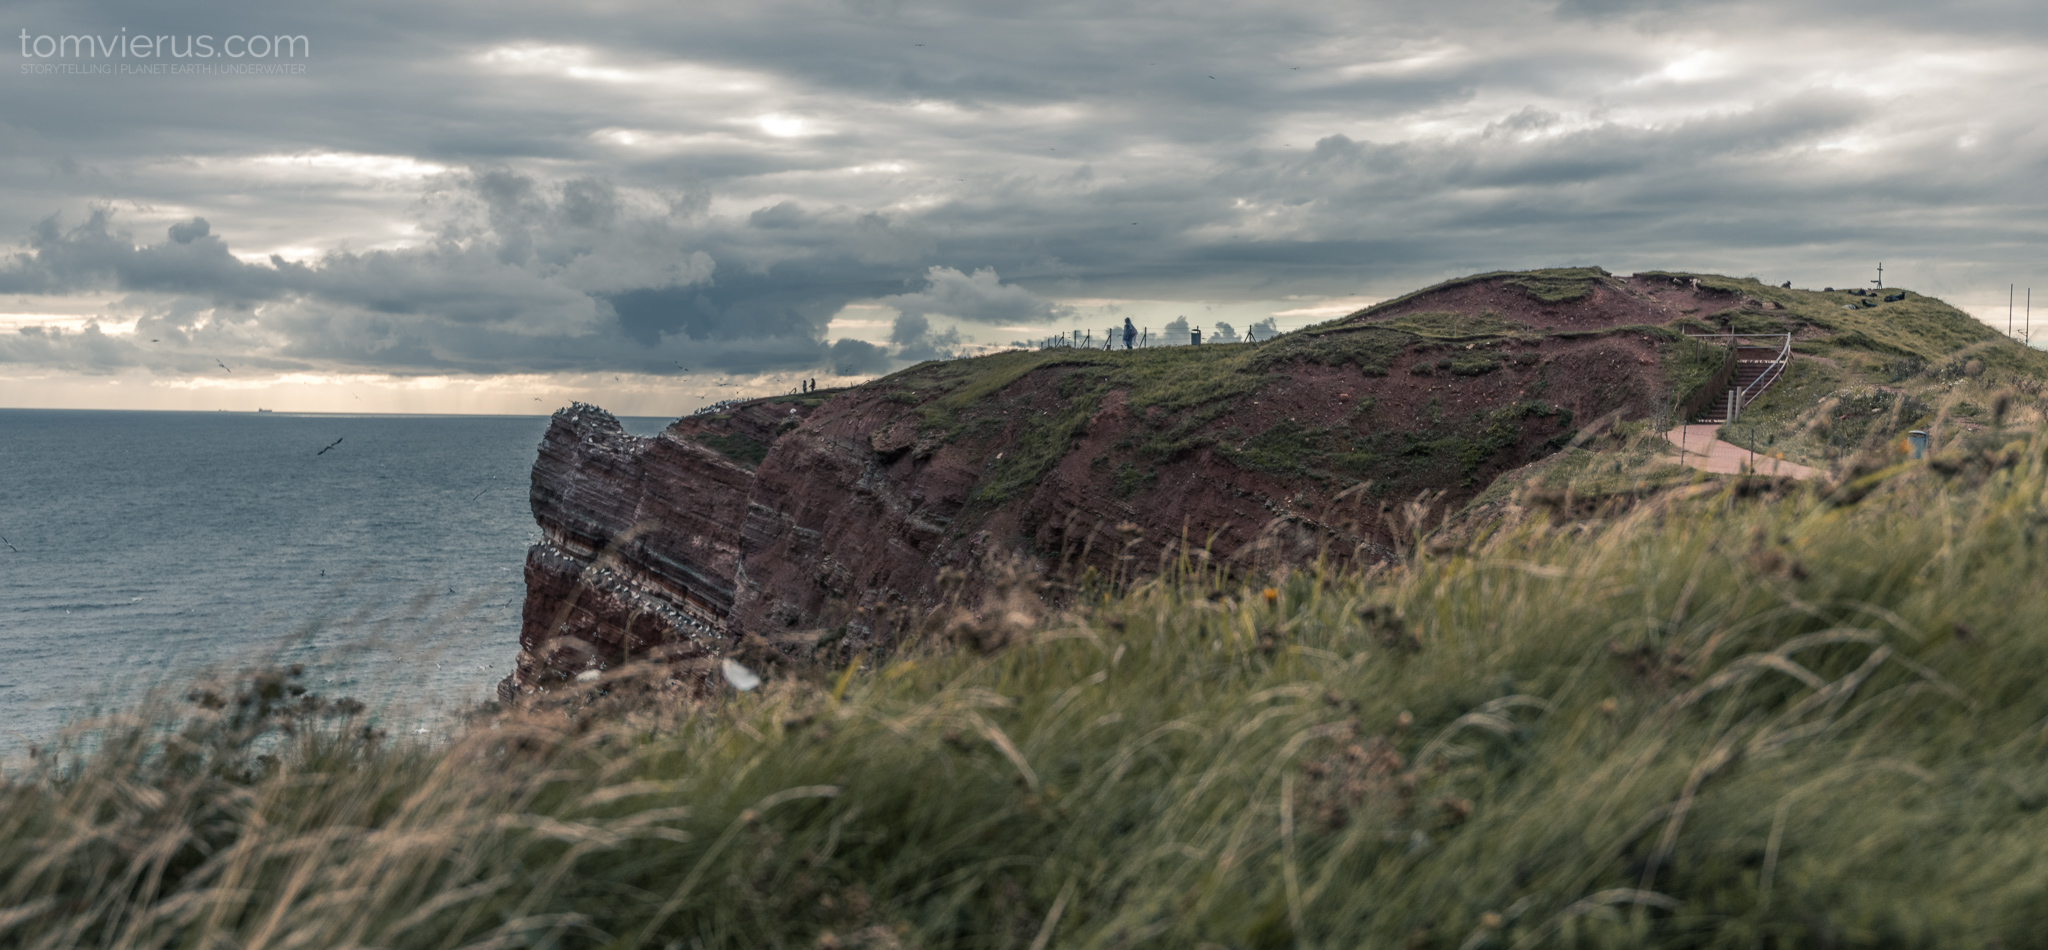 Helgoland, seabirds, cliffs